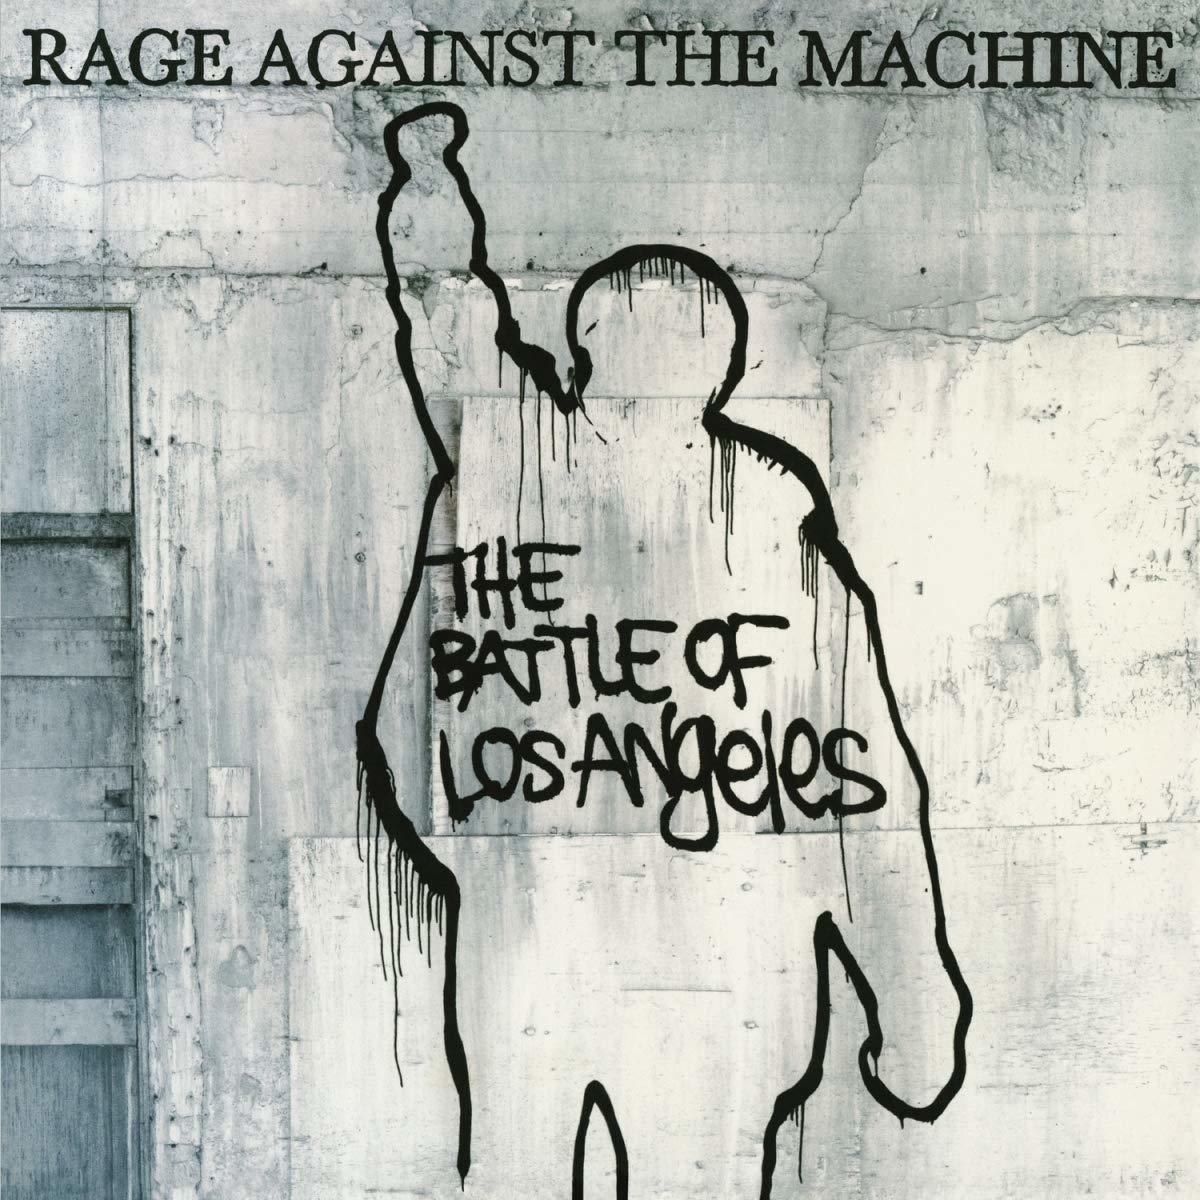 RAGE AGAINST THE MACHINE The Battle of Los Angeles (2018 REISSUE) LP.jpg